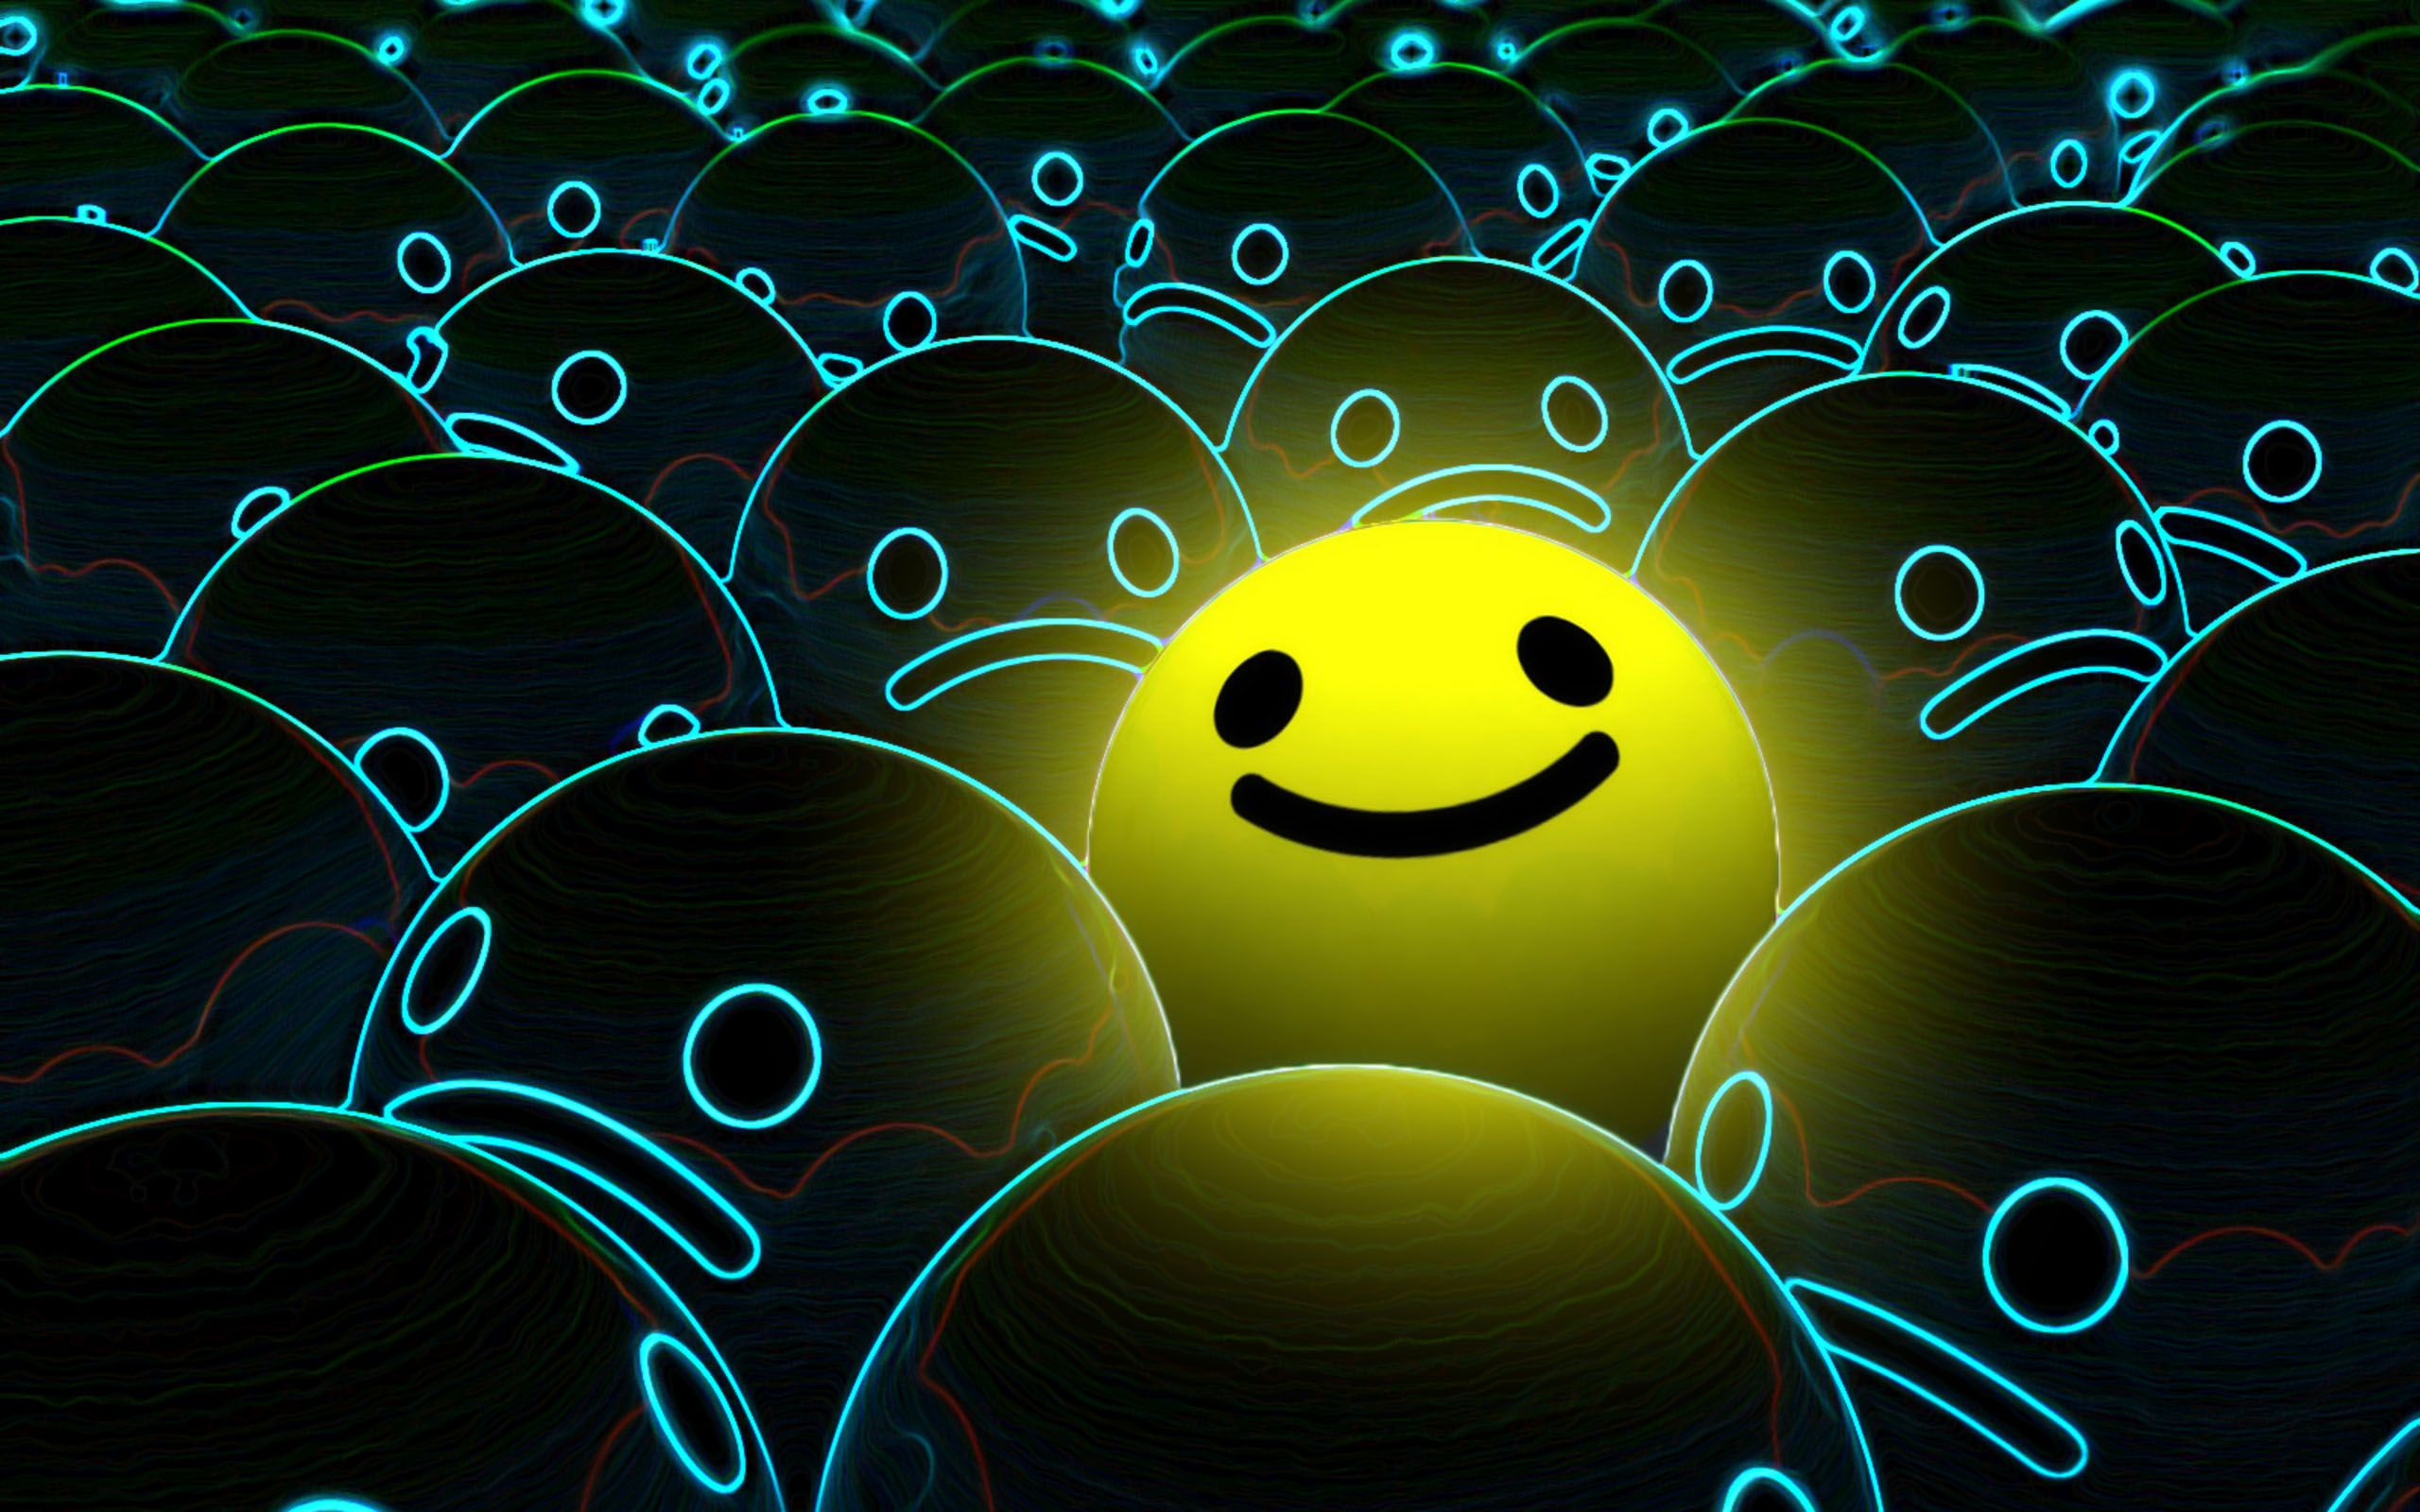 Wallpapers For > Animated Smiley Face Backgrounds Smiley